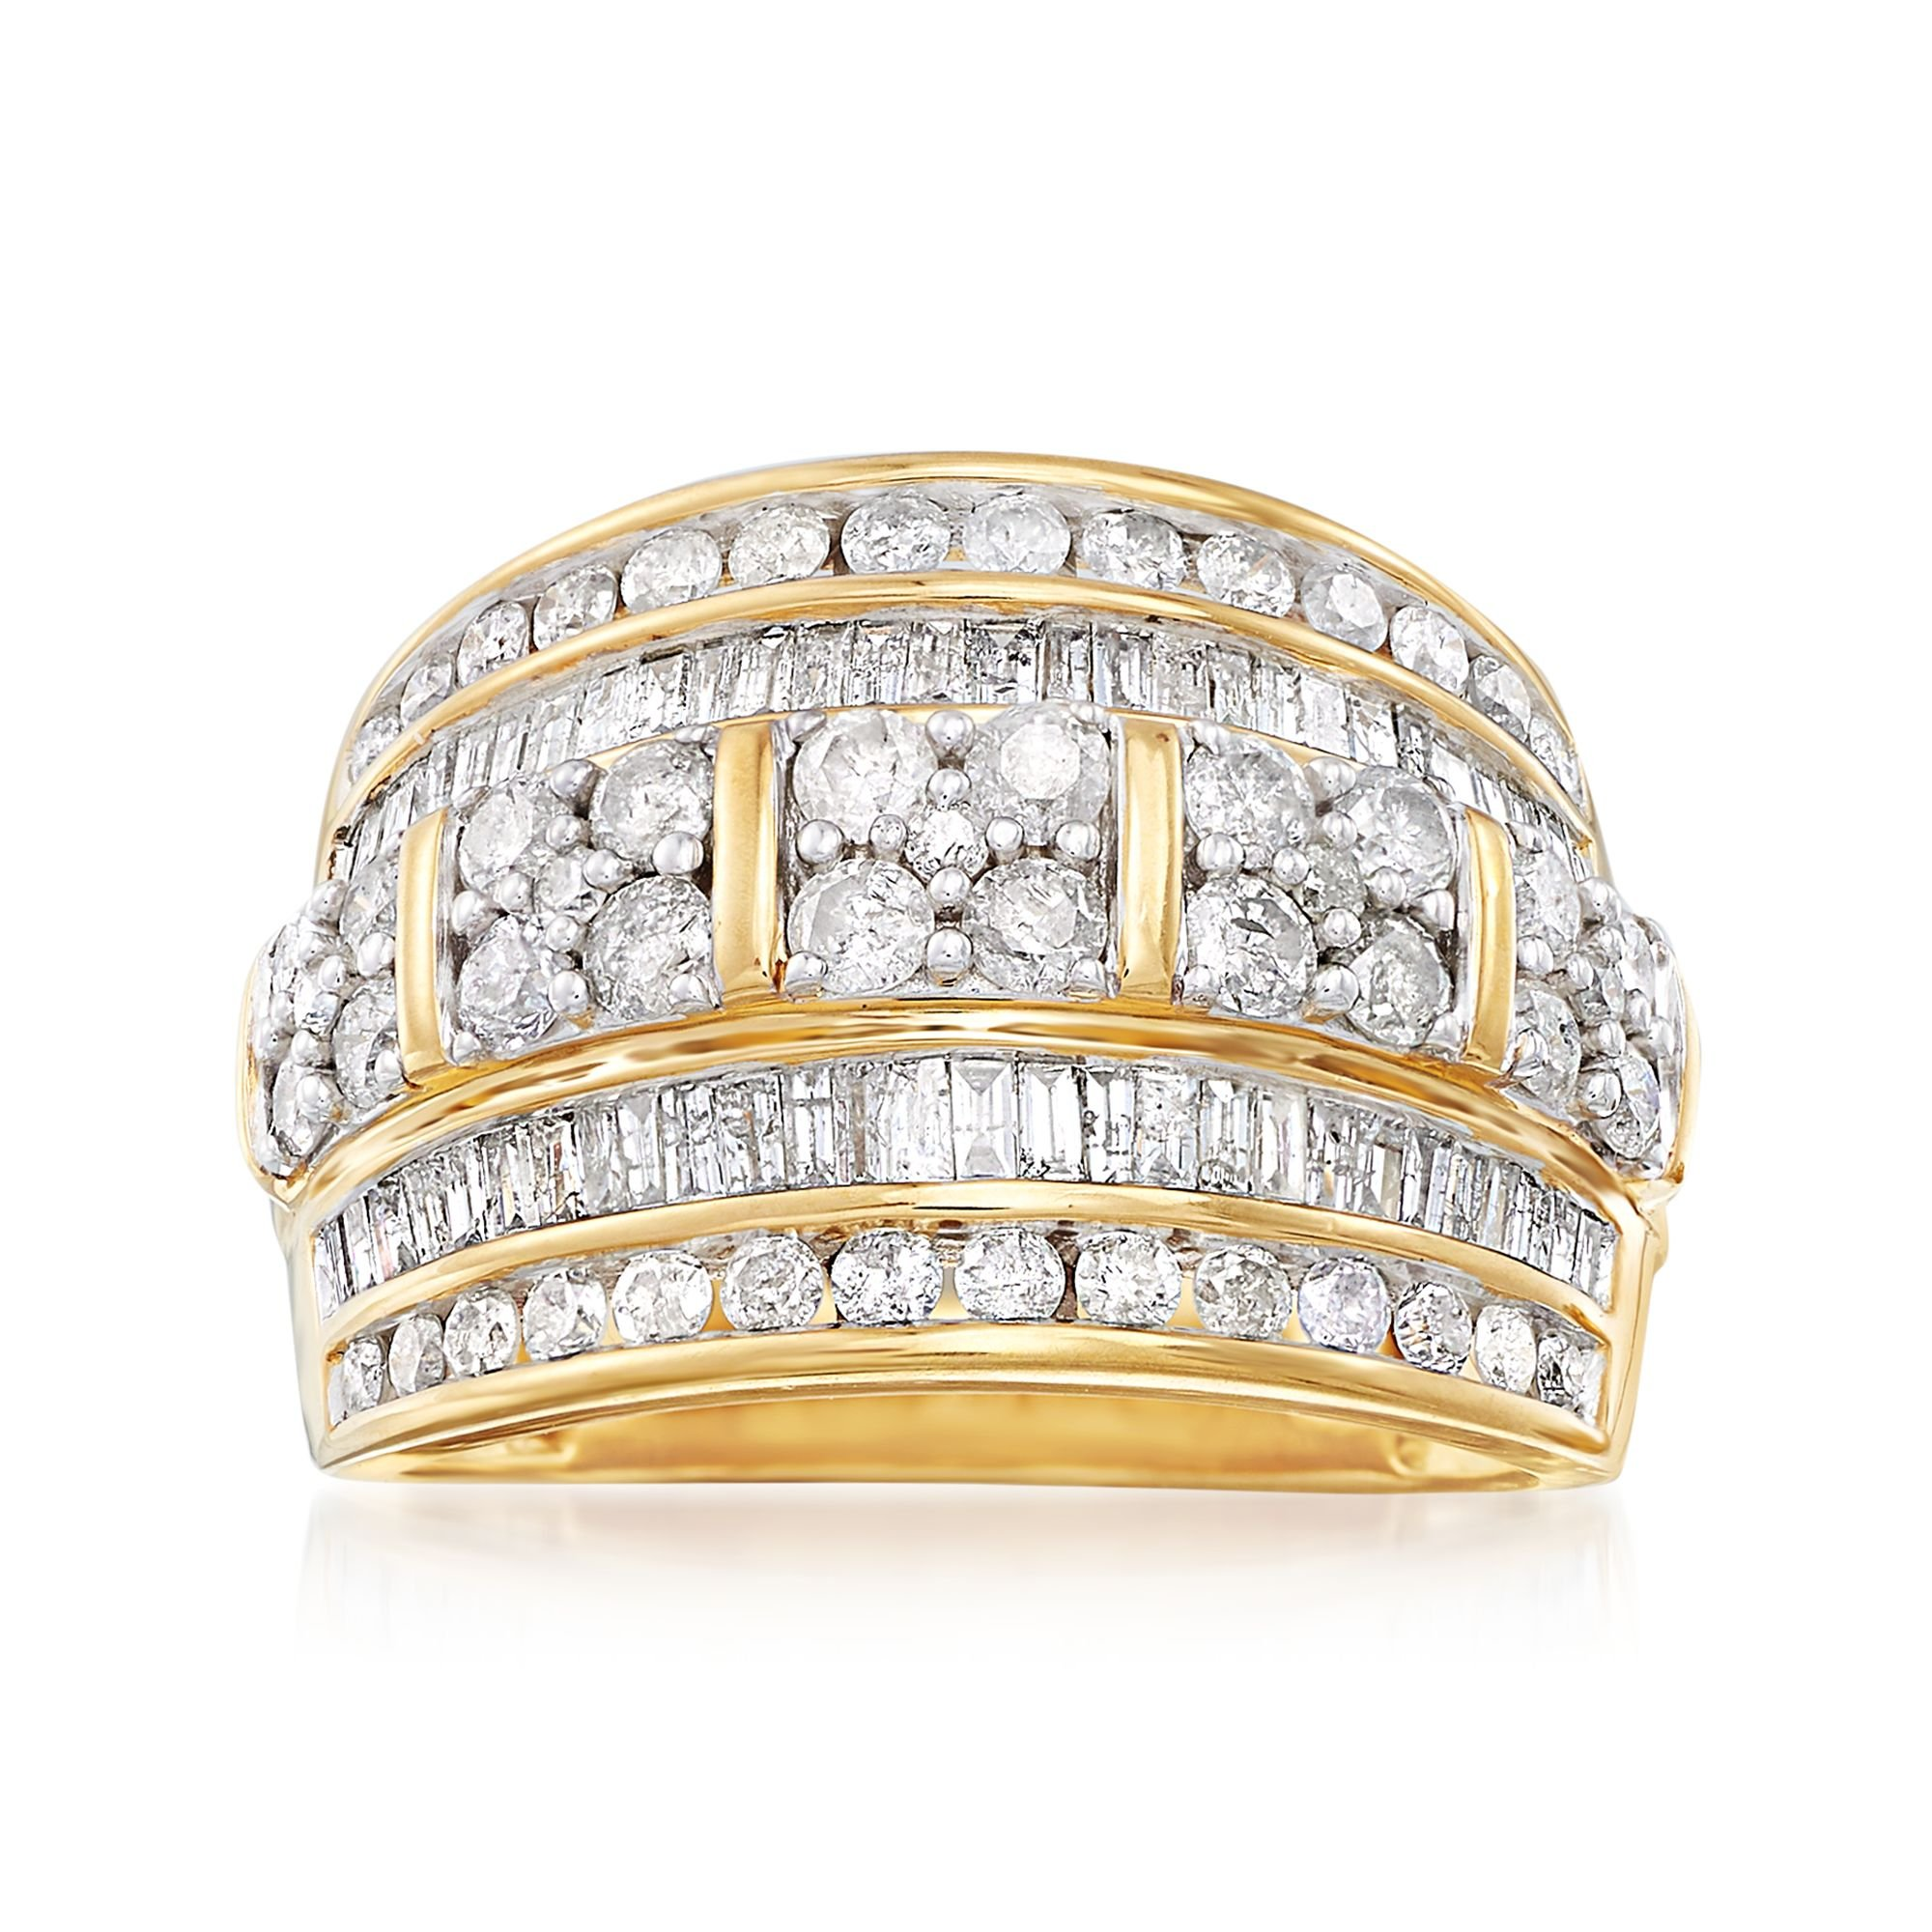 Ross-Simons 2.00 ct. t.w. Baguette and Round Diamond Multi-Row Ring in 18kt Gold Over Sterling